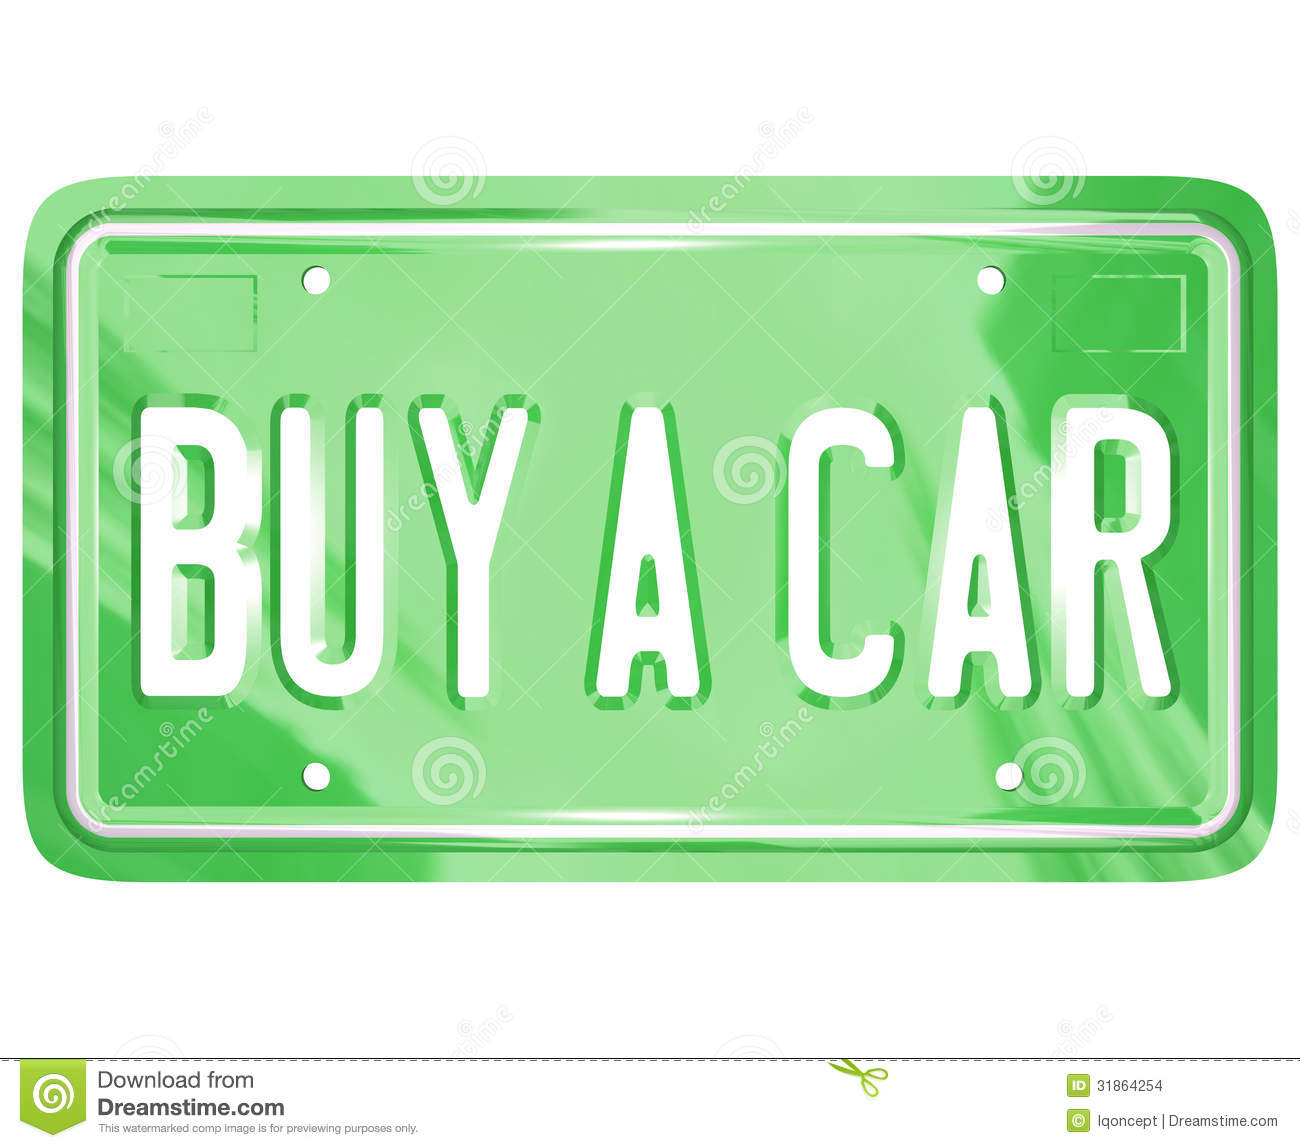 No License Plate When Buying A Used Car